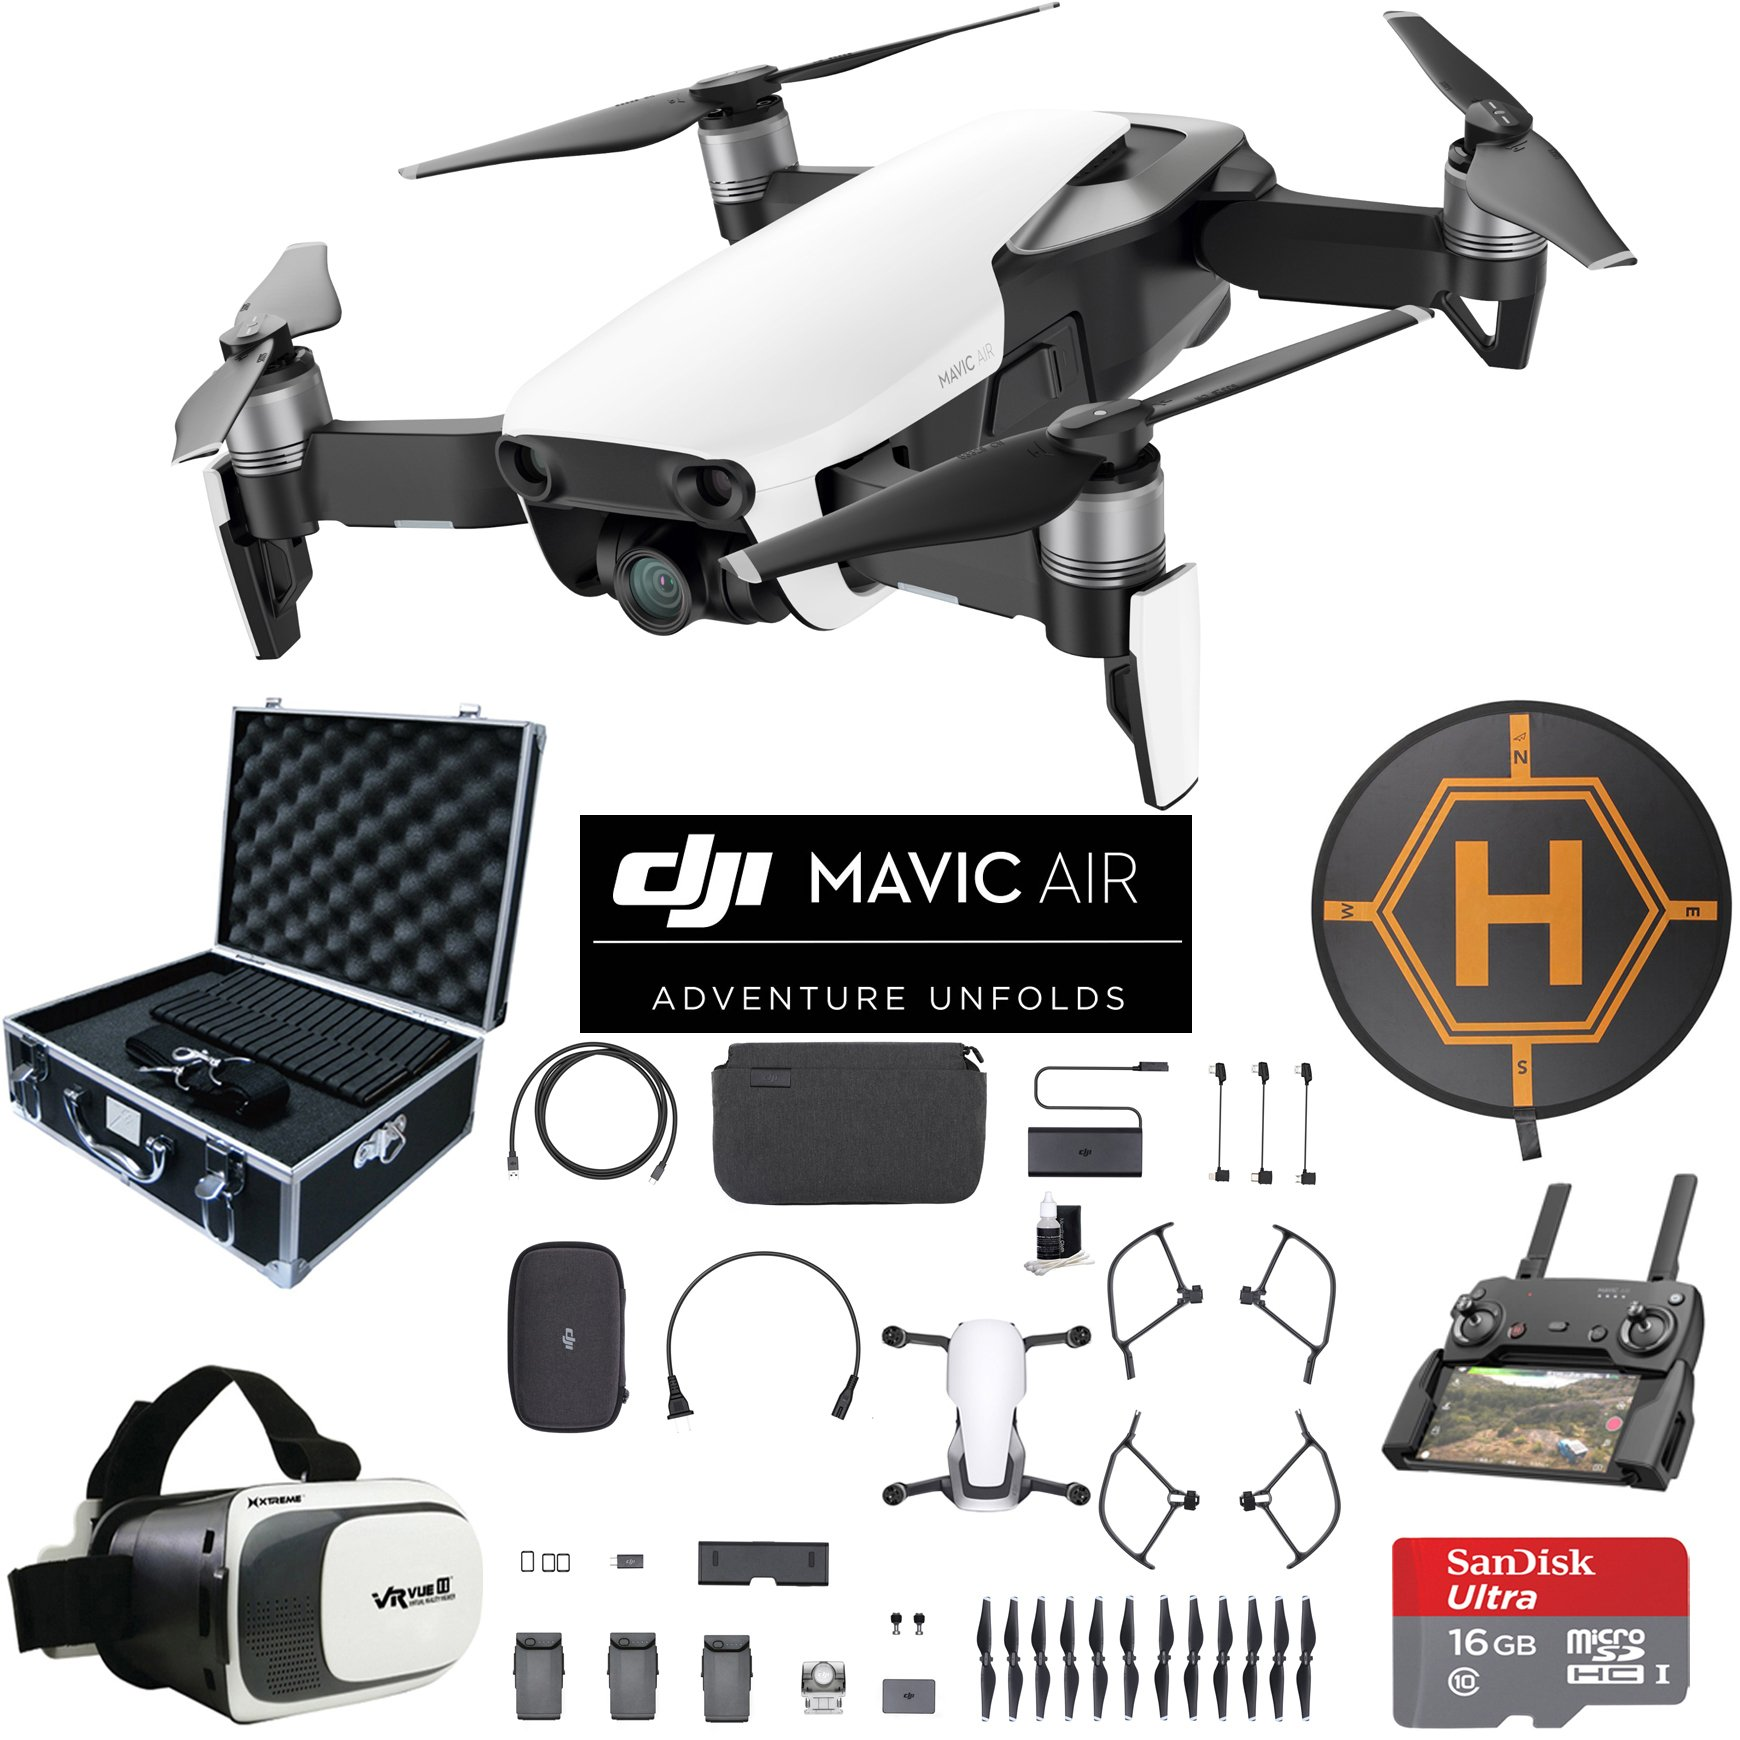 DJI Mavic Air Fly More Combo (Arctic White) Drone Combo 4K Wi-Fi Quadcopter with Remote Controller Mobile Go Bundle with Hard Case VR Goggles Landing Pad 16GB microSDHC Card Kit